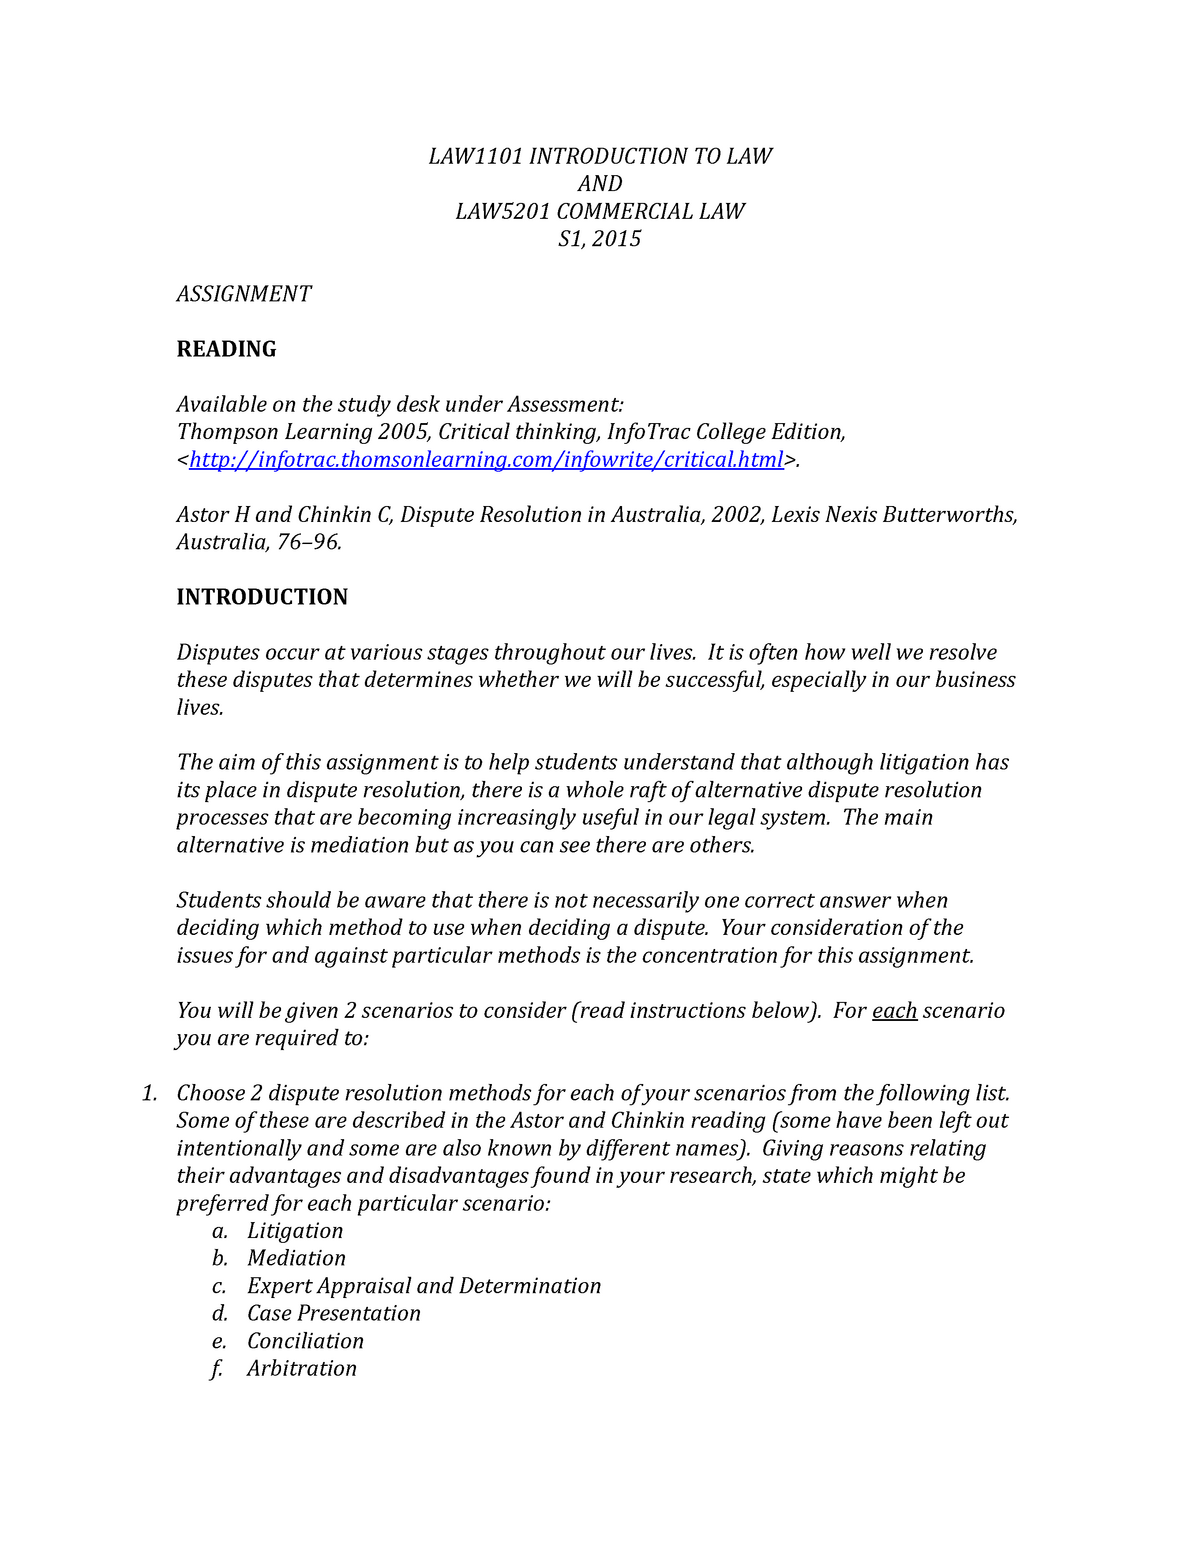 LAW1101 Assignment 2015 - Introduction to Law - USQ - StuDocu